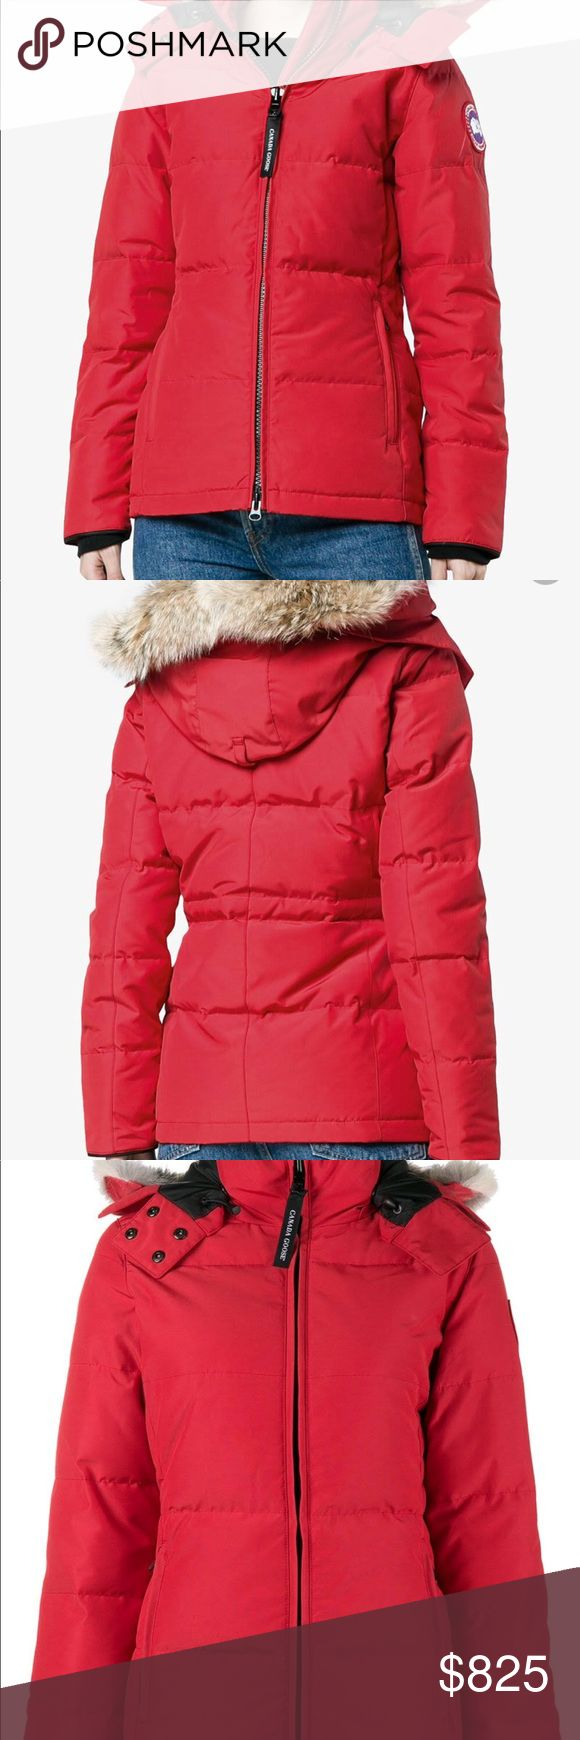 Canada Goose Chelsea Parka Brand new, with tags. Coyote fur hood. Will upload pics Monday AM! Canada Goose Jackets & Coats Puffers